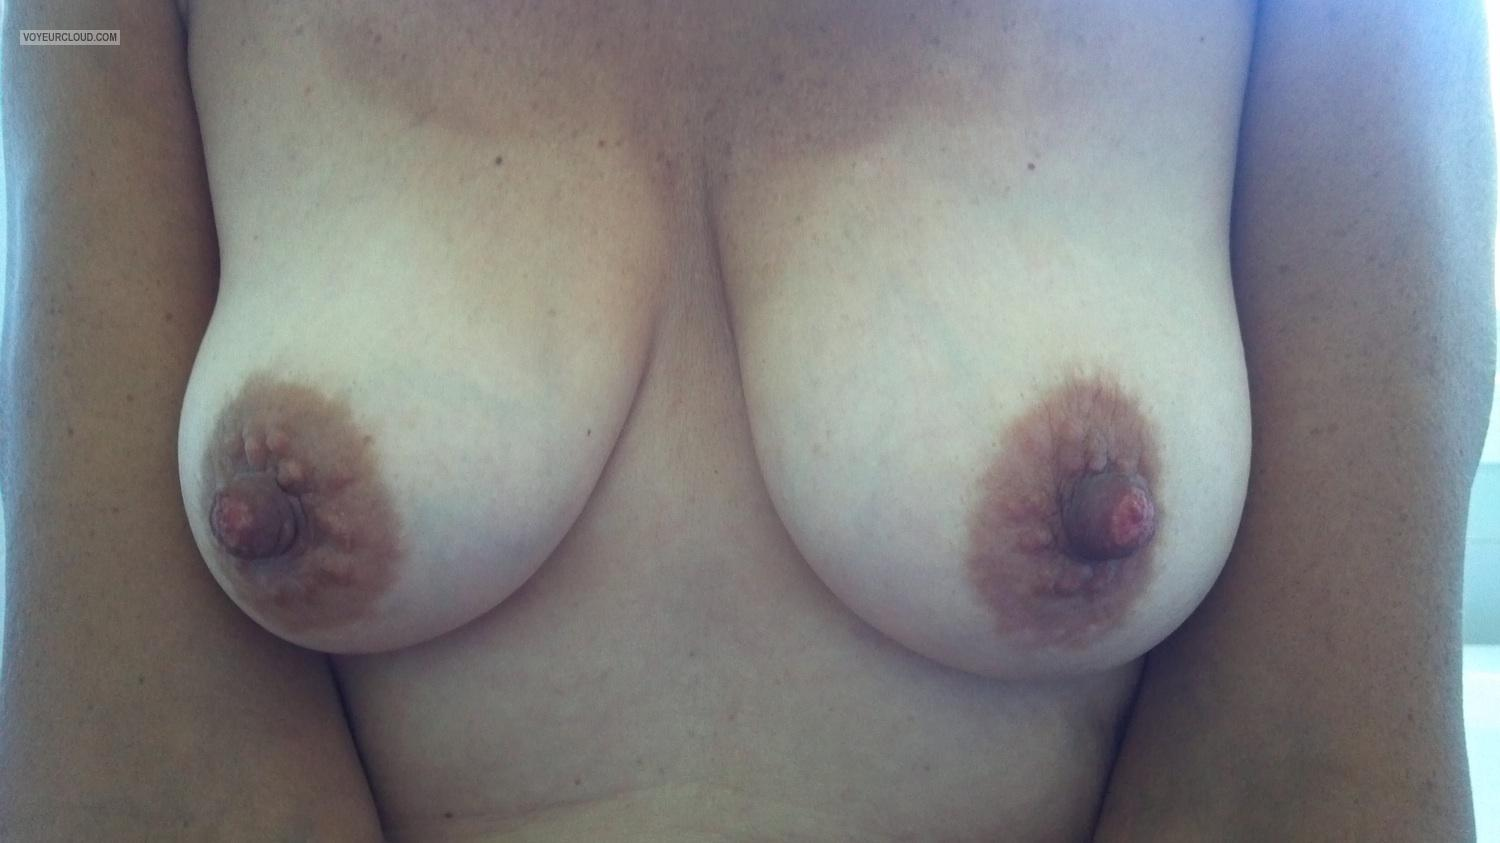 Tit Flash: My Medium Tits (Selfie) - GreatNips69 from United States